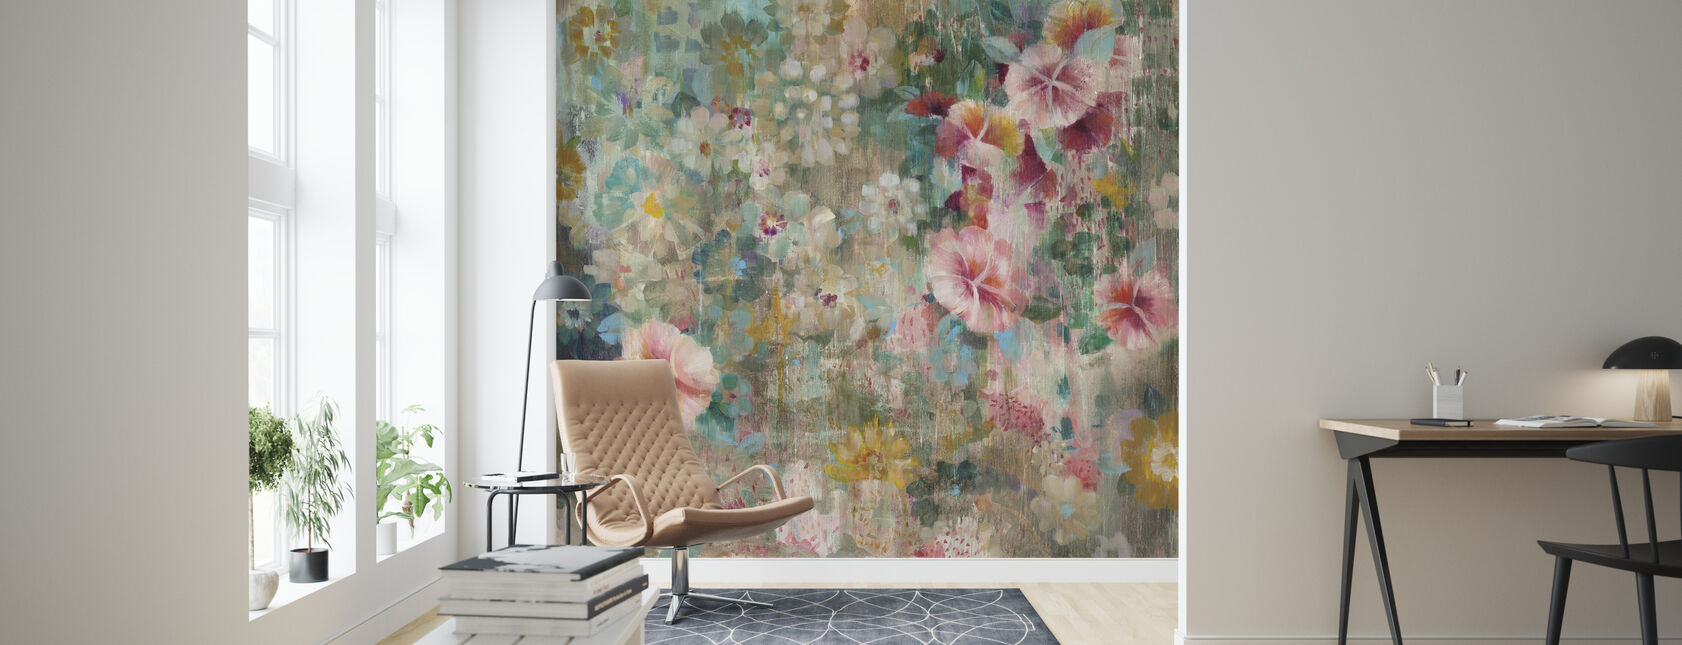 Flower Shower - Wallpaper - Living Room